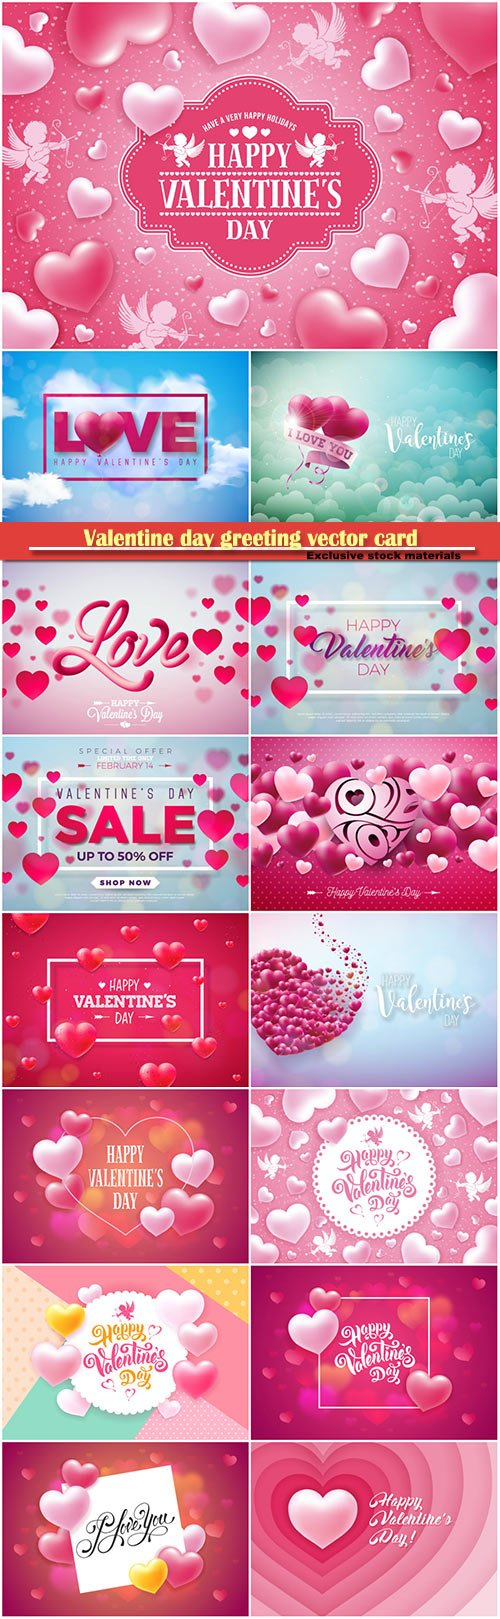 Valentine day greeting vector card, hearts i love you # 6